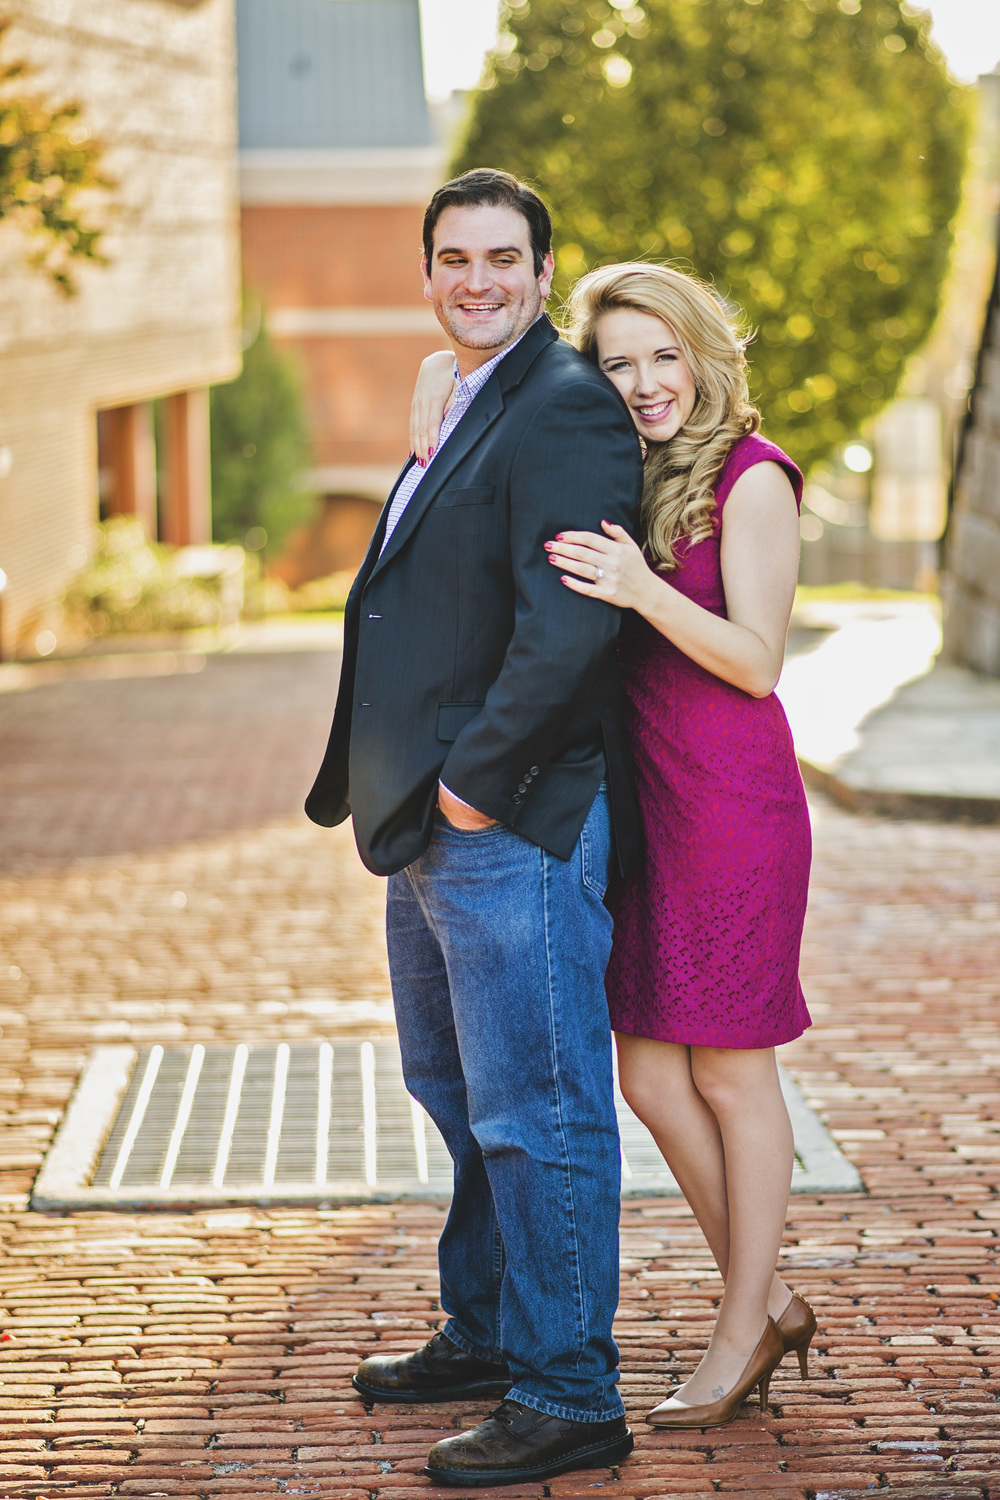 bookstore_fairytale_downtown_engagement_session_lynchburg_va021.jpg